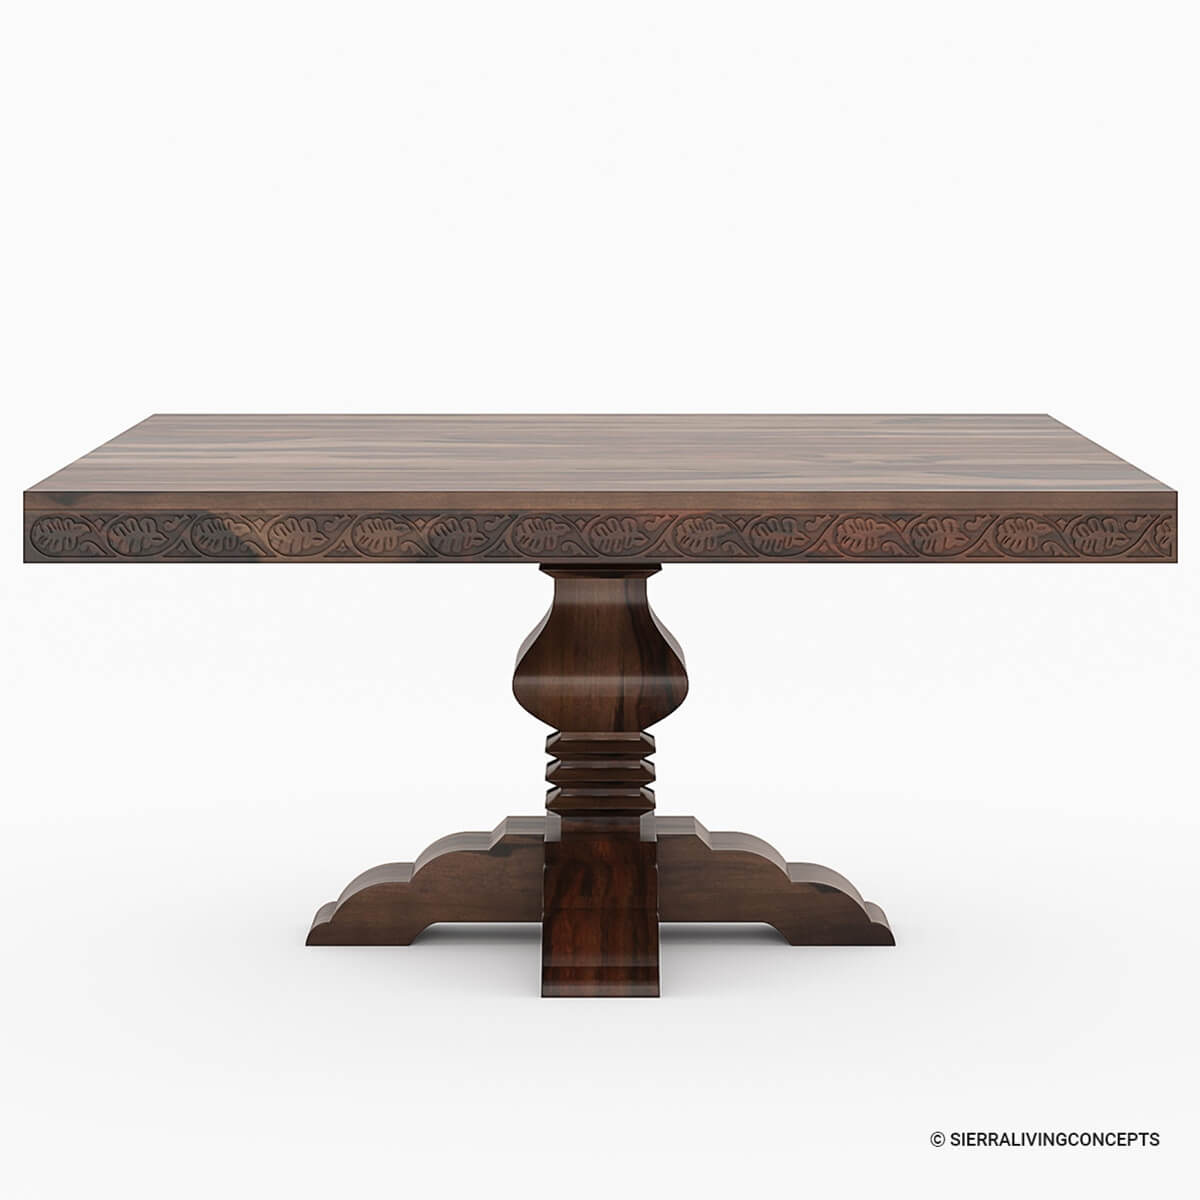 florida rustic solid wood handcarved pedestal square dining table. Black Bedroom Furniture Sets. Home Design Ideas